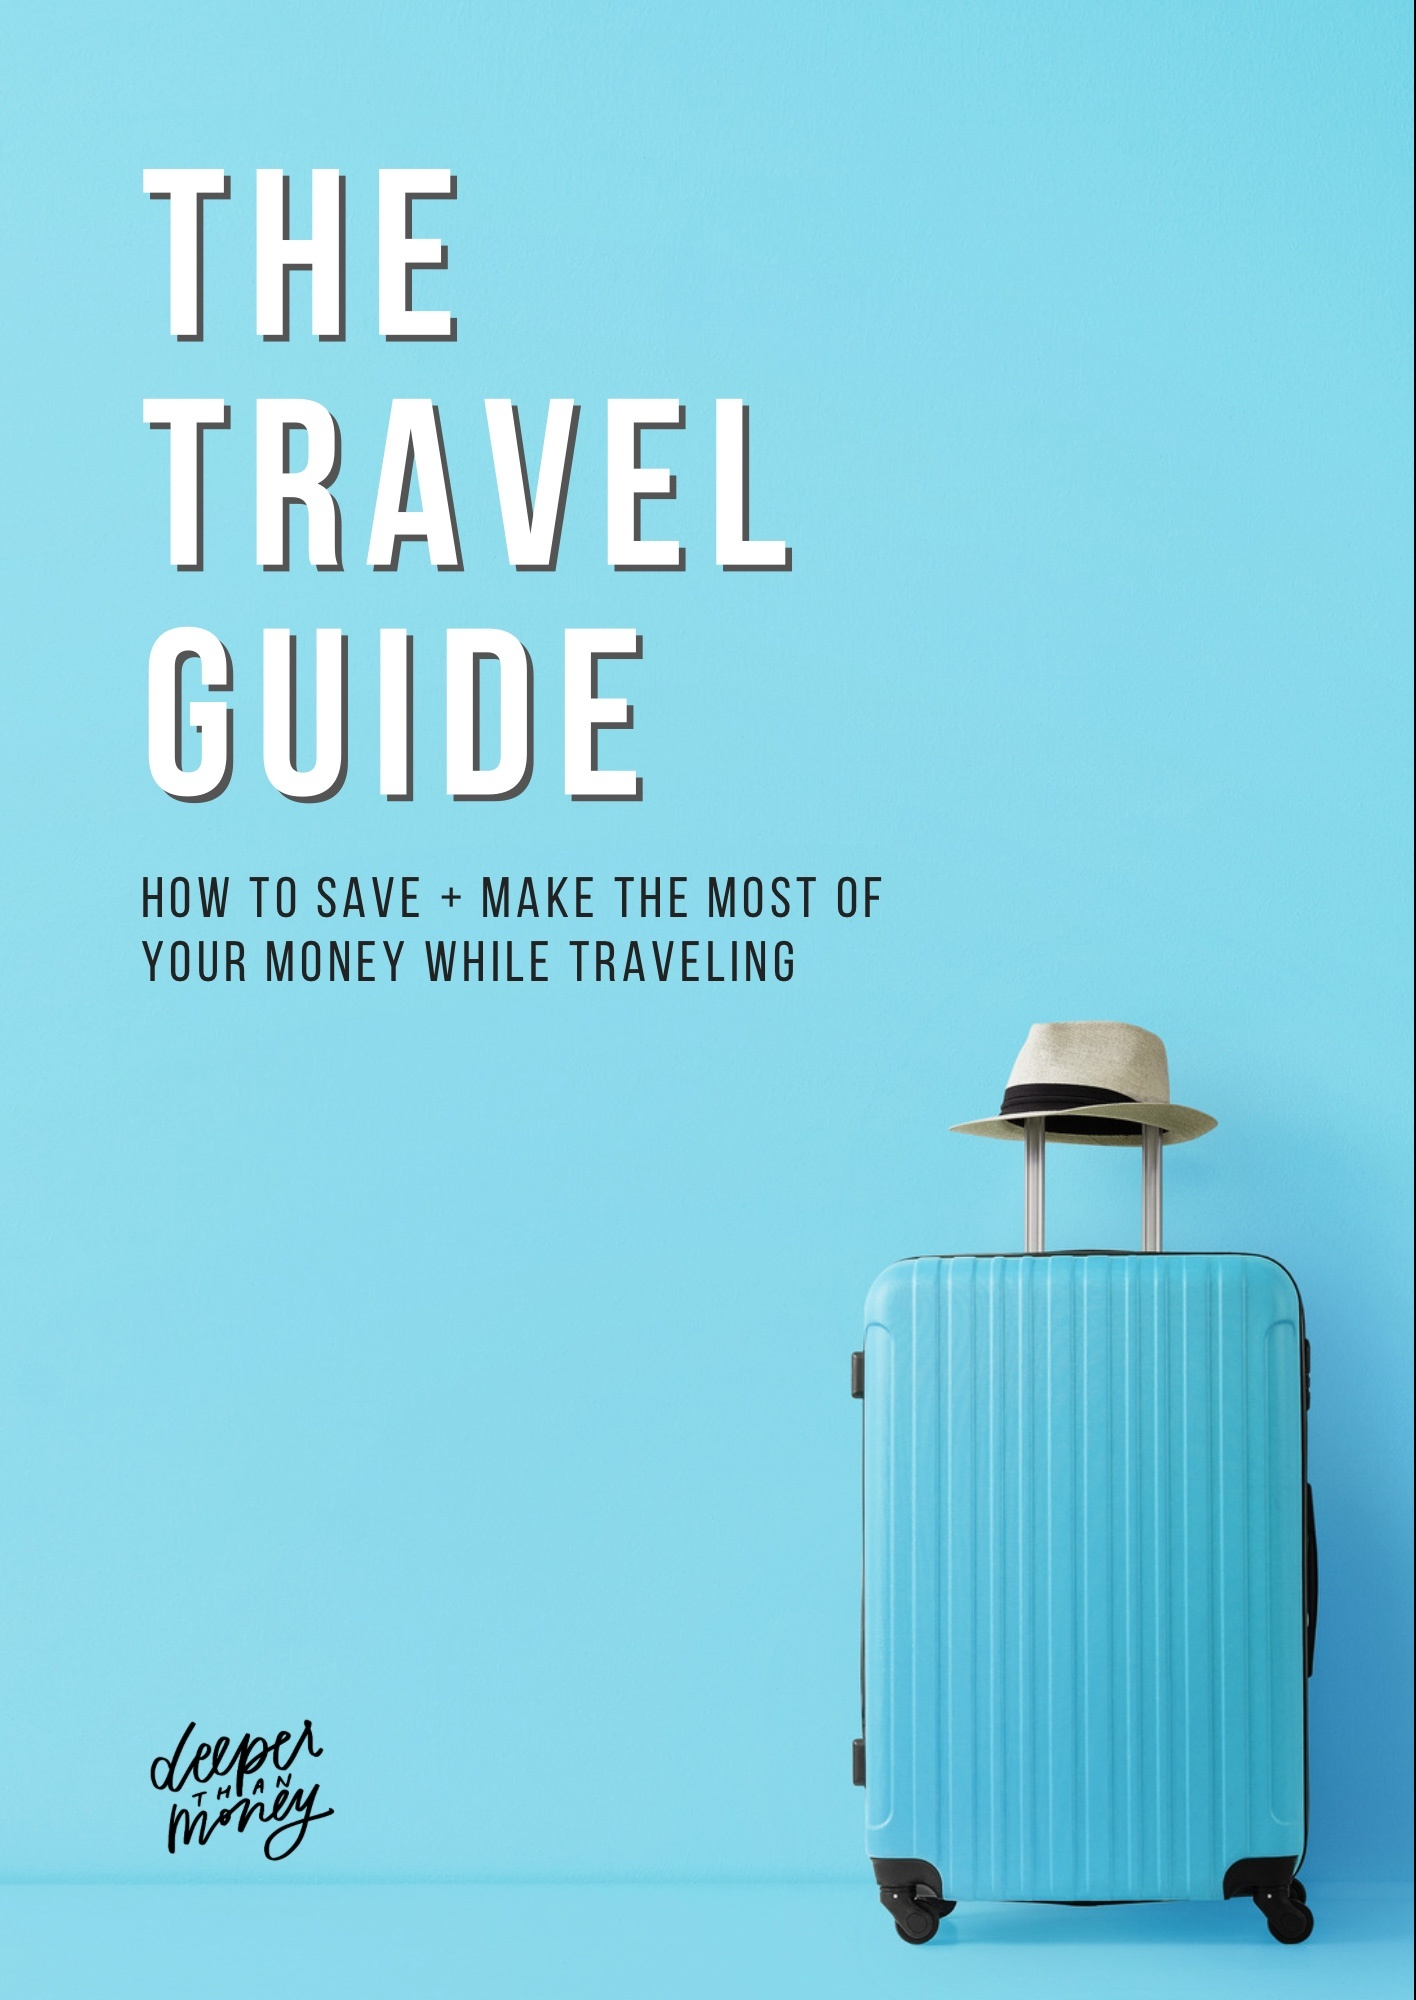 YOU CAN TRAVEL + STILL GET AHEAD WITH MONEY